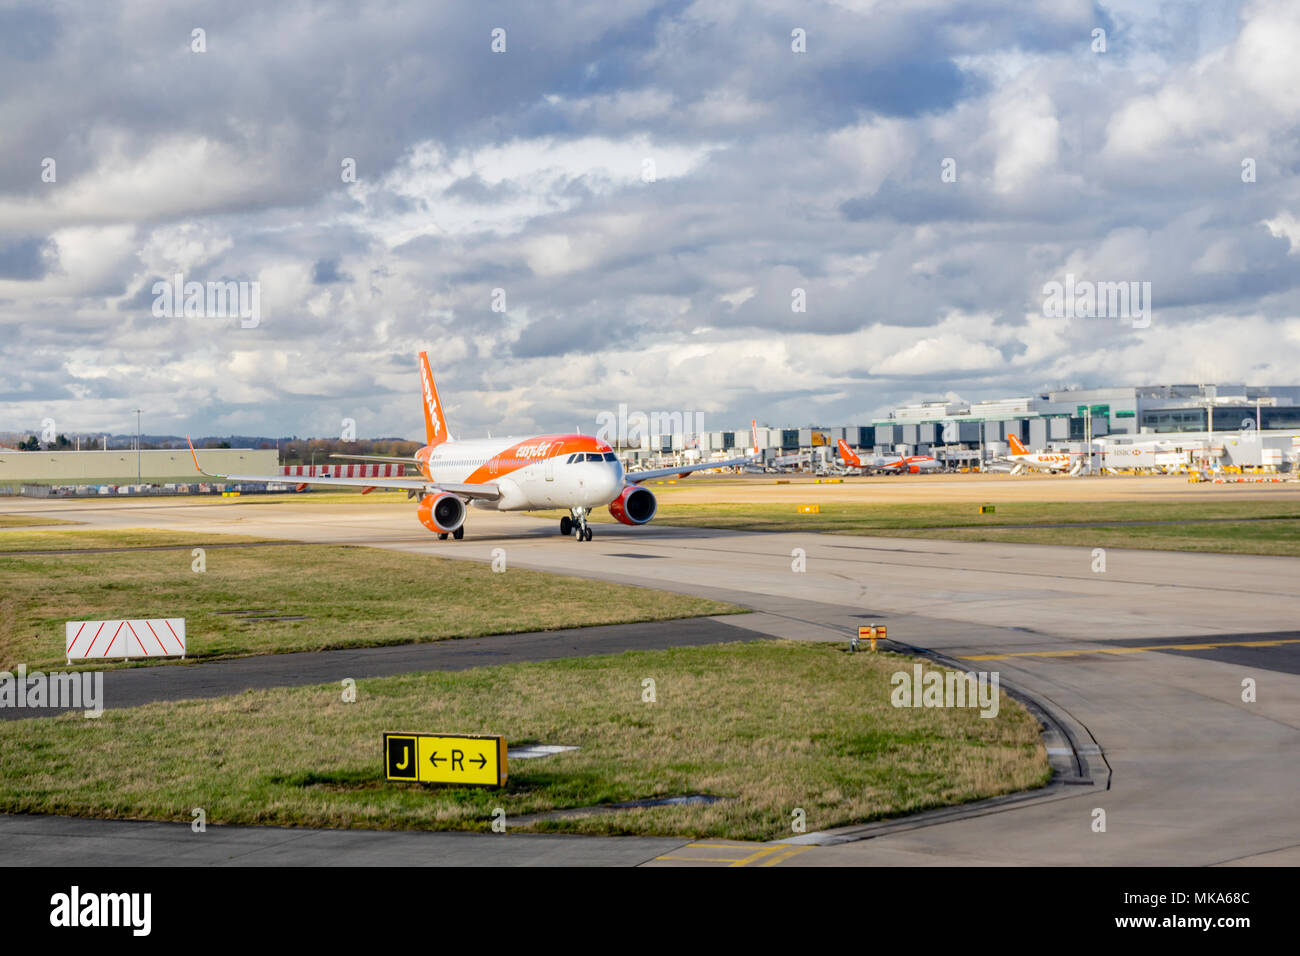 Easyjet air plane on the airfield at Gatwick airport (LGW) , Surrey, England, UK - Stock Image